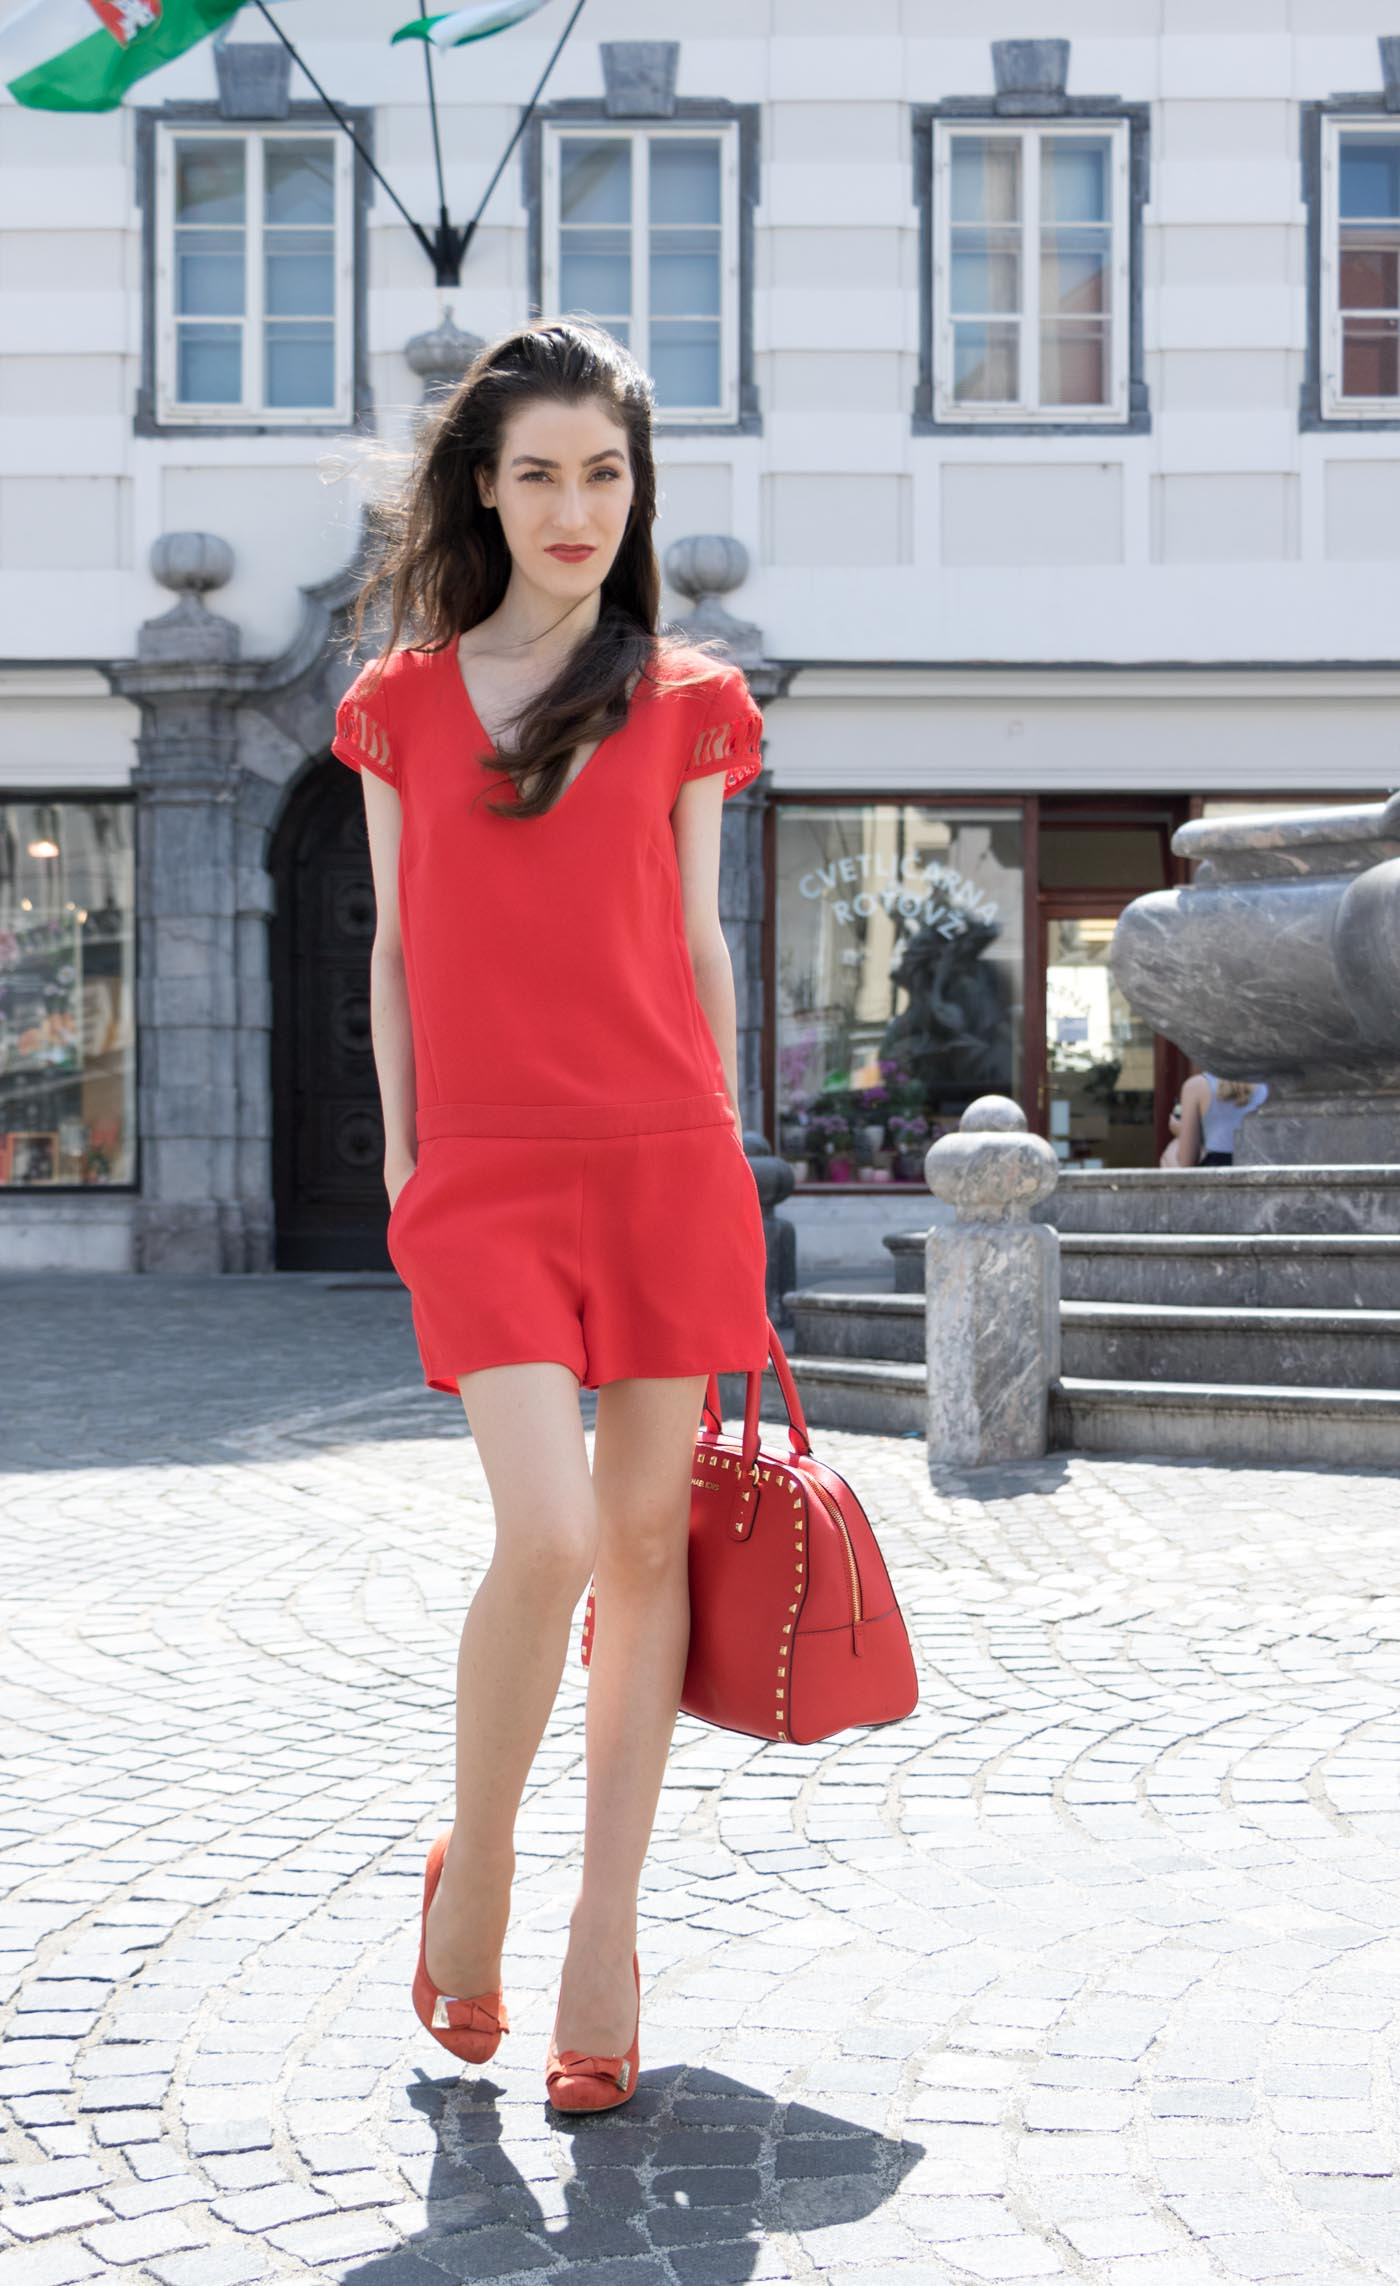 Red Outfit Head To Toe Streetstyle 3 Brunette From Wall Street